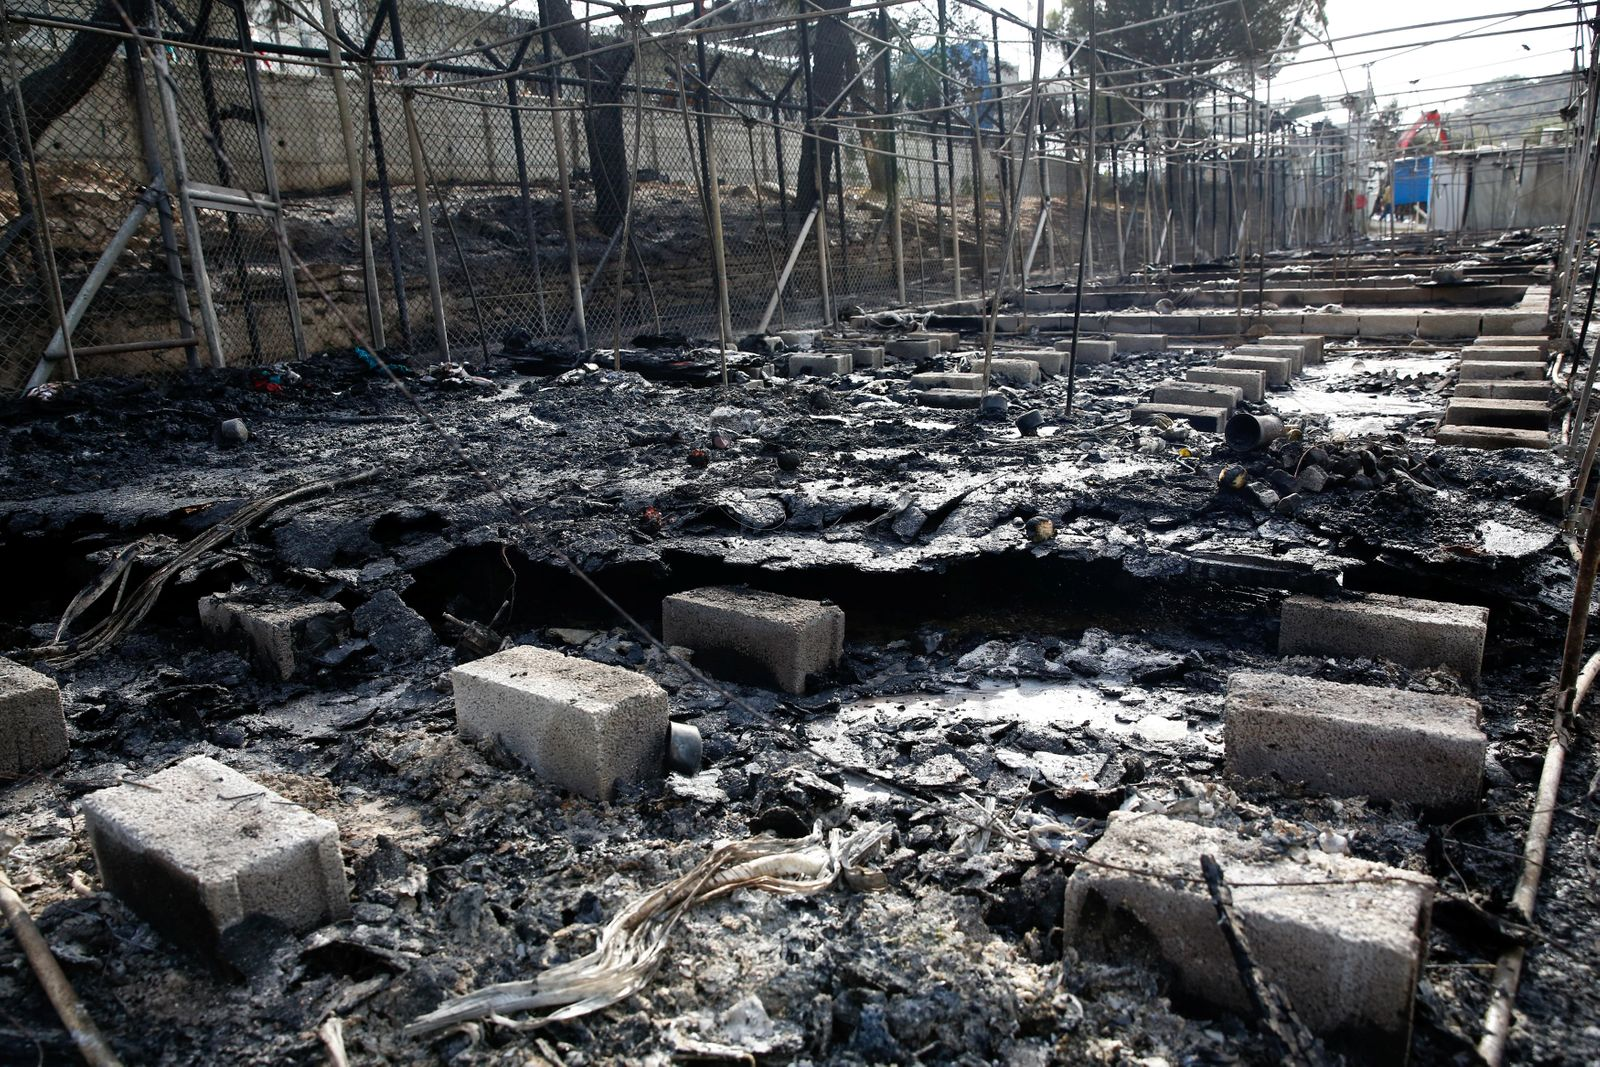 The remains of a burned tent at the Moria migrant camp, after a fire that ripped through tents and destroyed containers during violence among residents, on the island of Lesbos